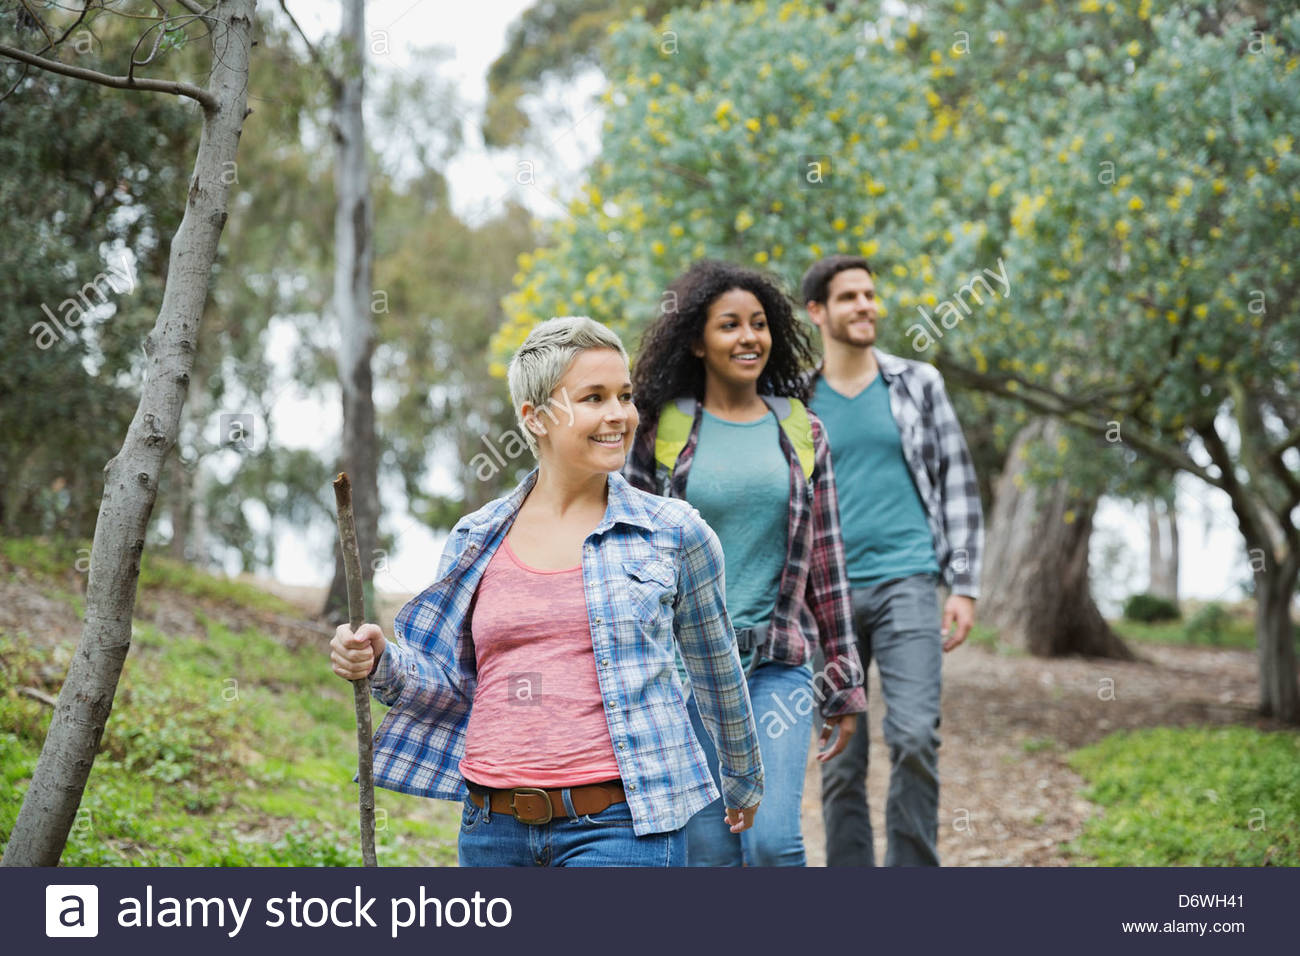 Happy friends hiking together in forest - Stock Image